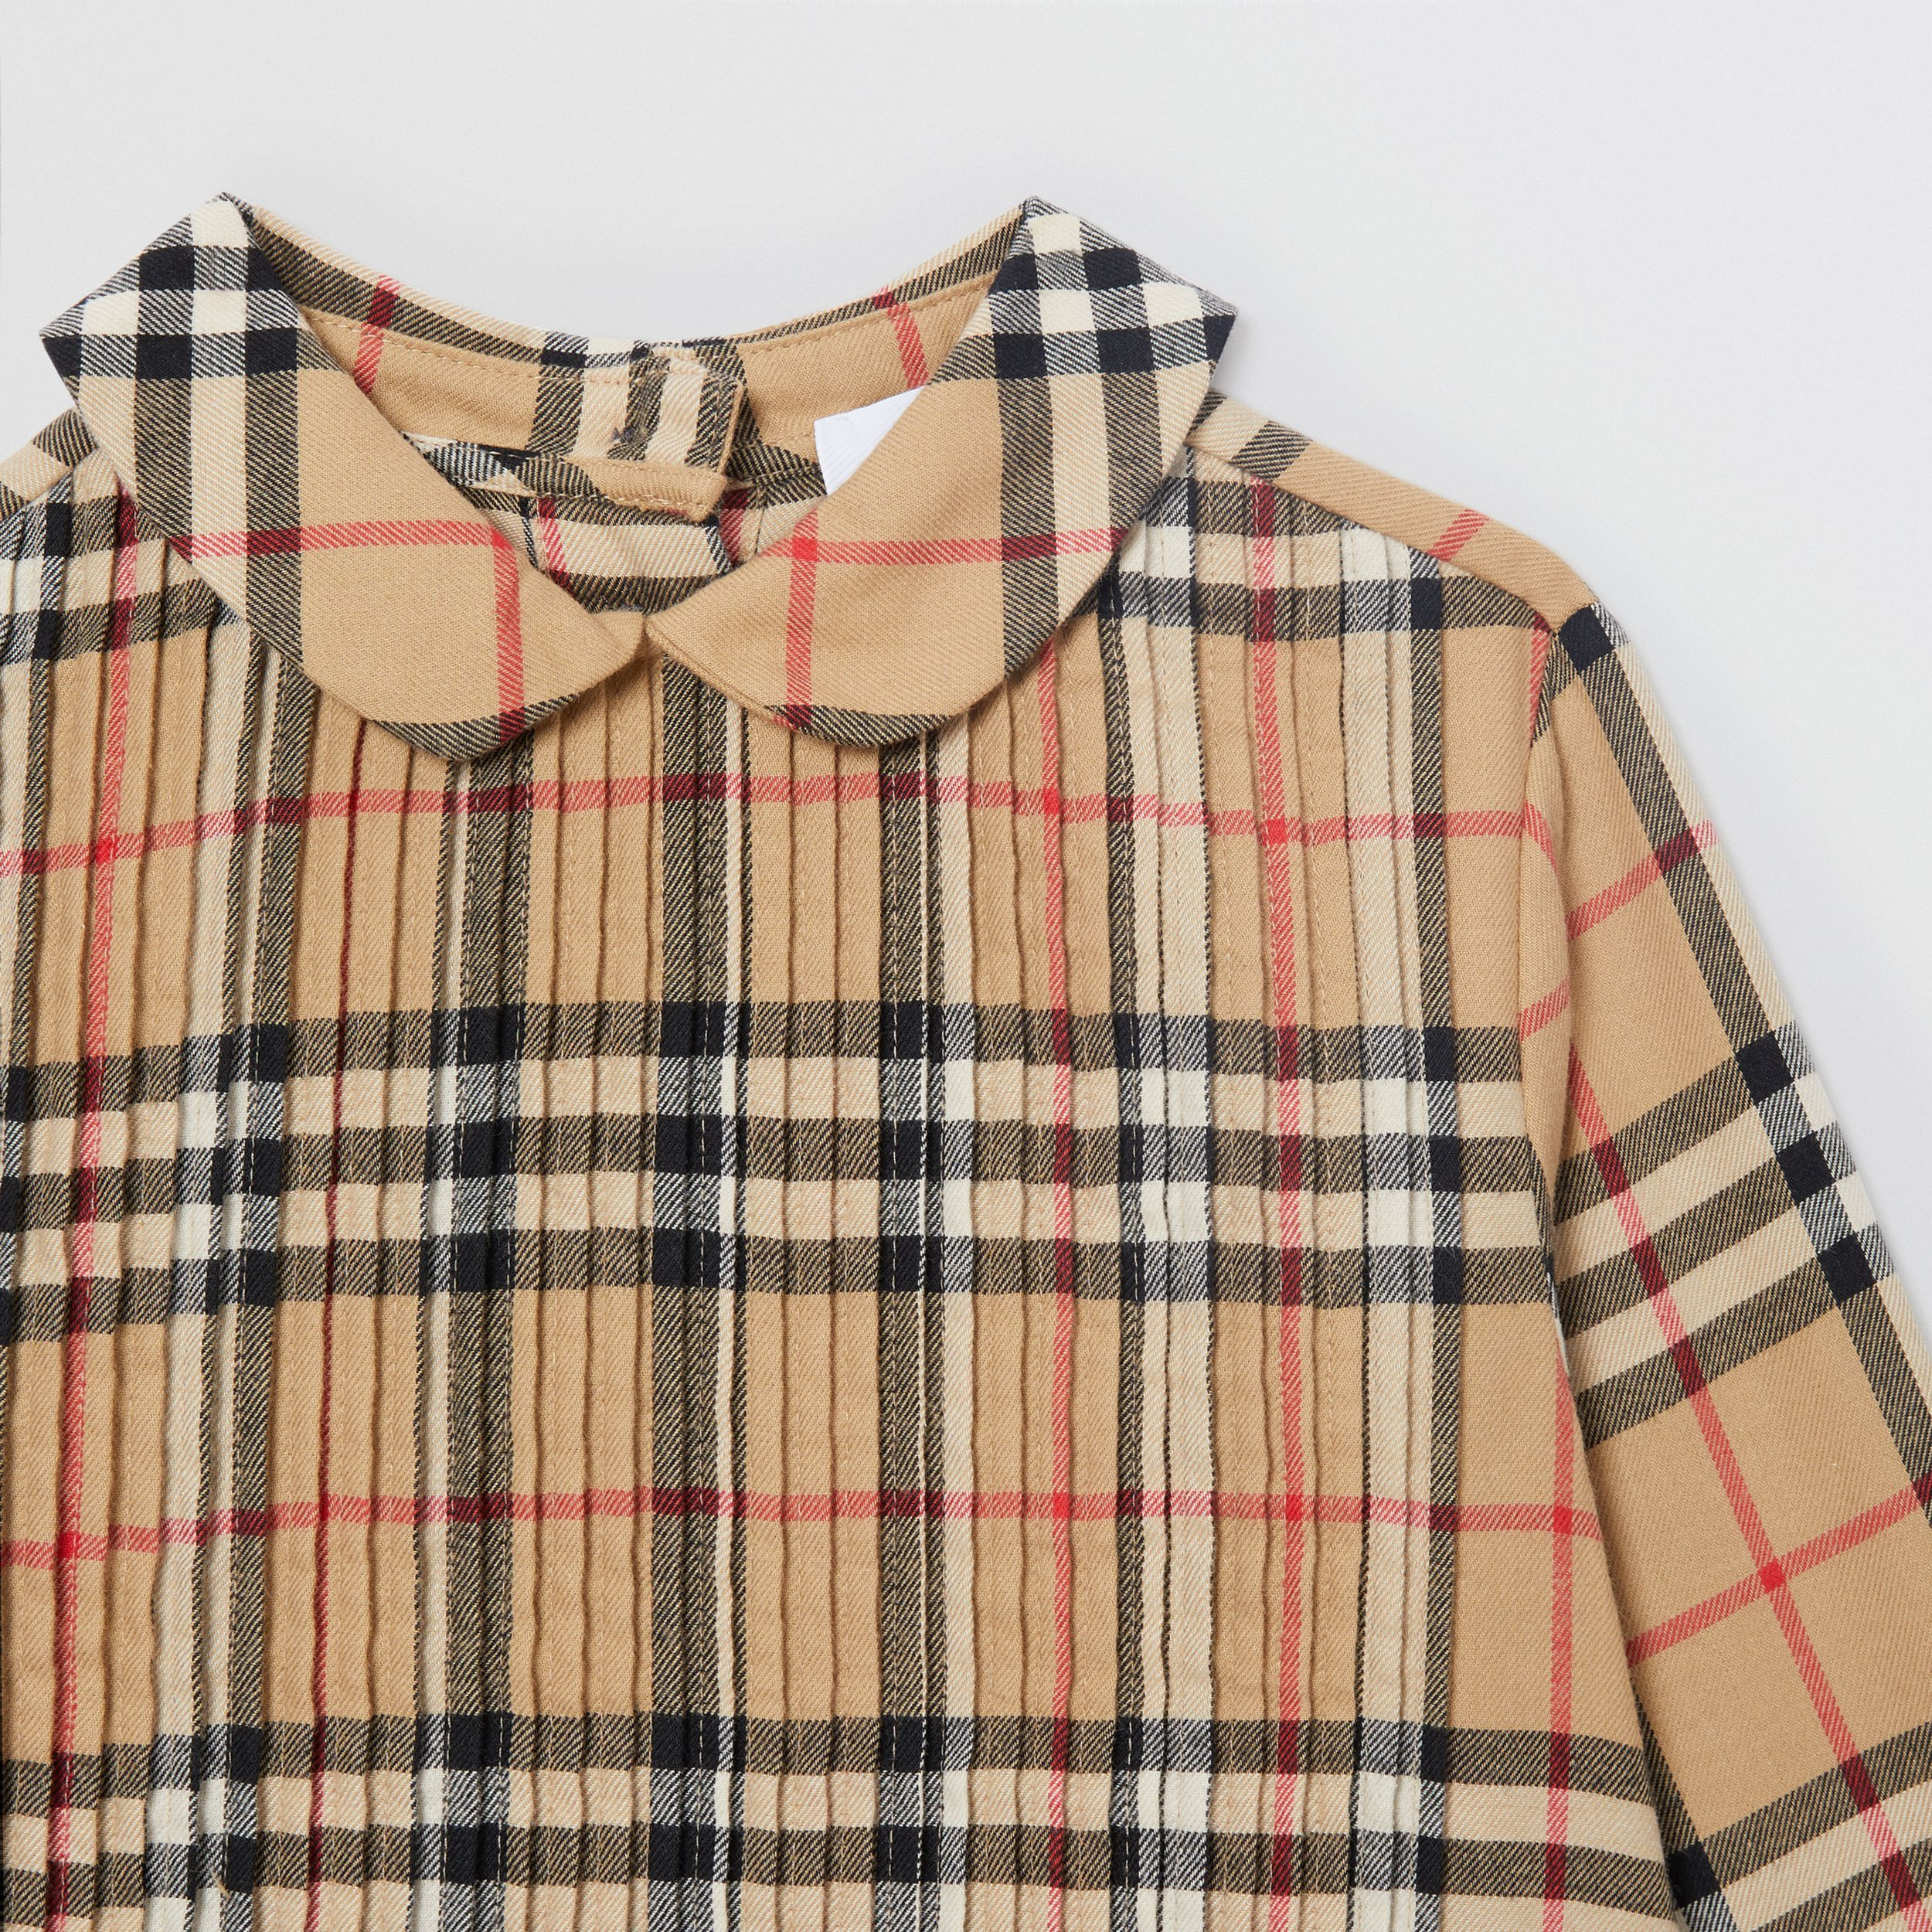 Pintuck Detail Vintage Check Cotton Twill Blouse in Archive Beige | Burberry United Kingdom - 4